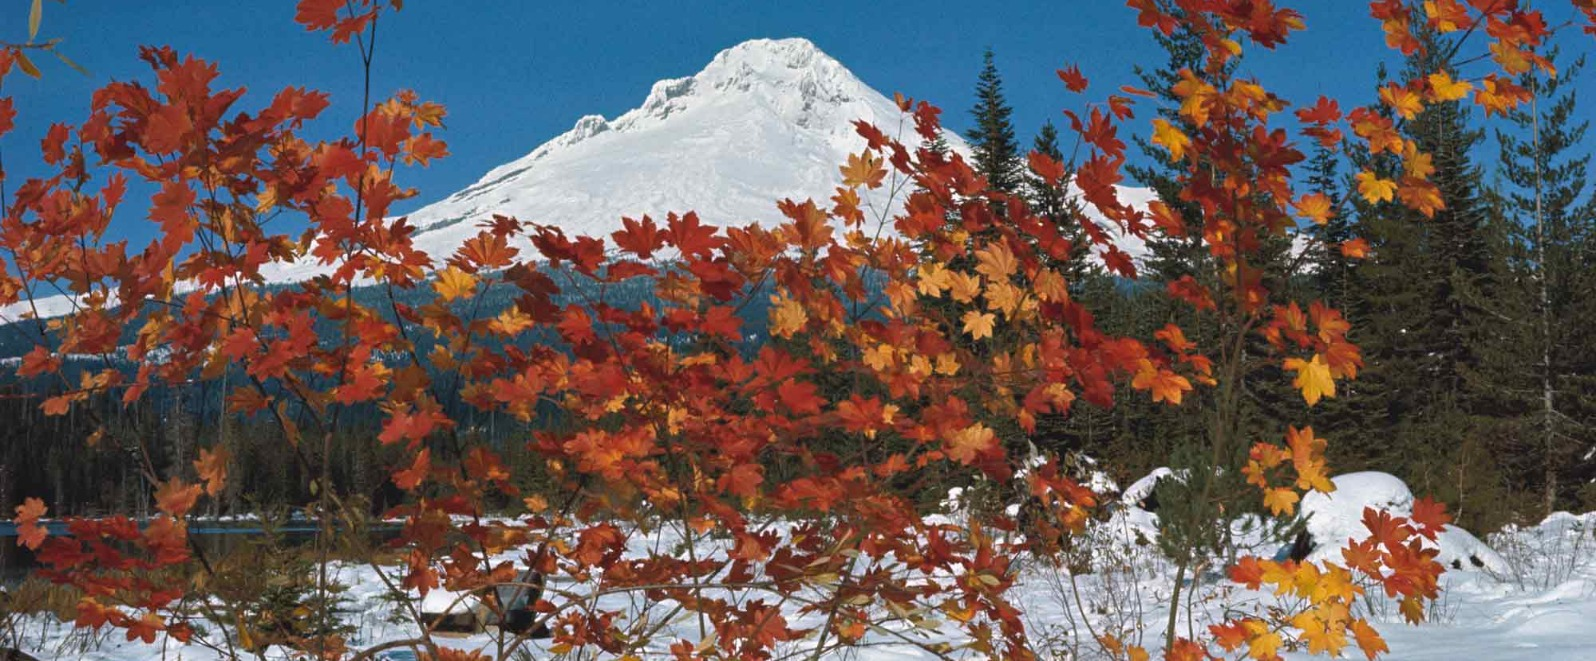 Mt. Hood and vine maples in the snow Trillium Lake Oregons Mt Hood Territory